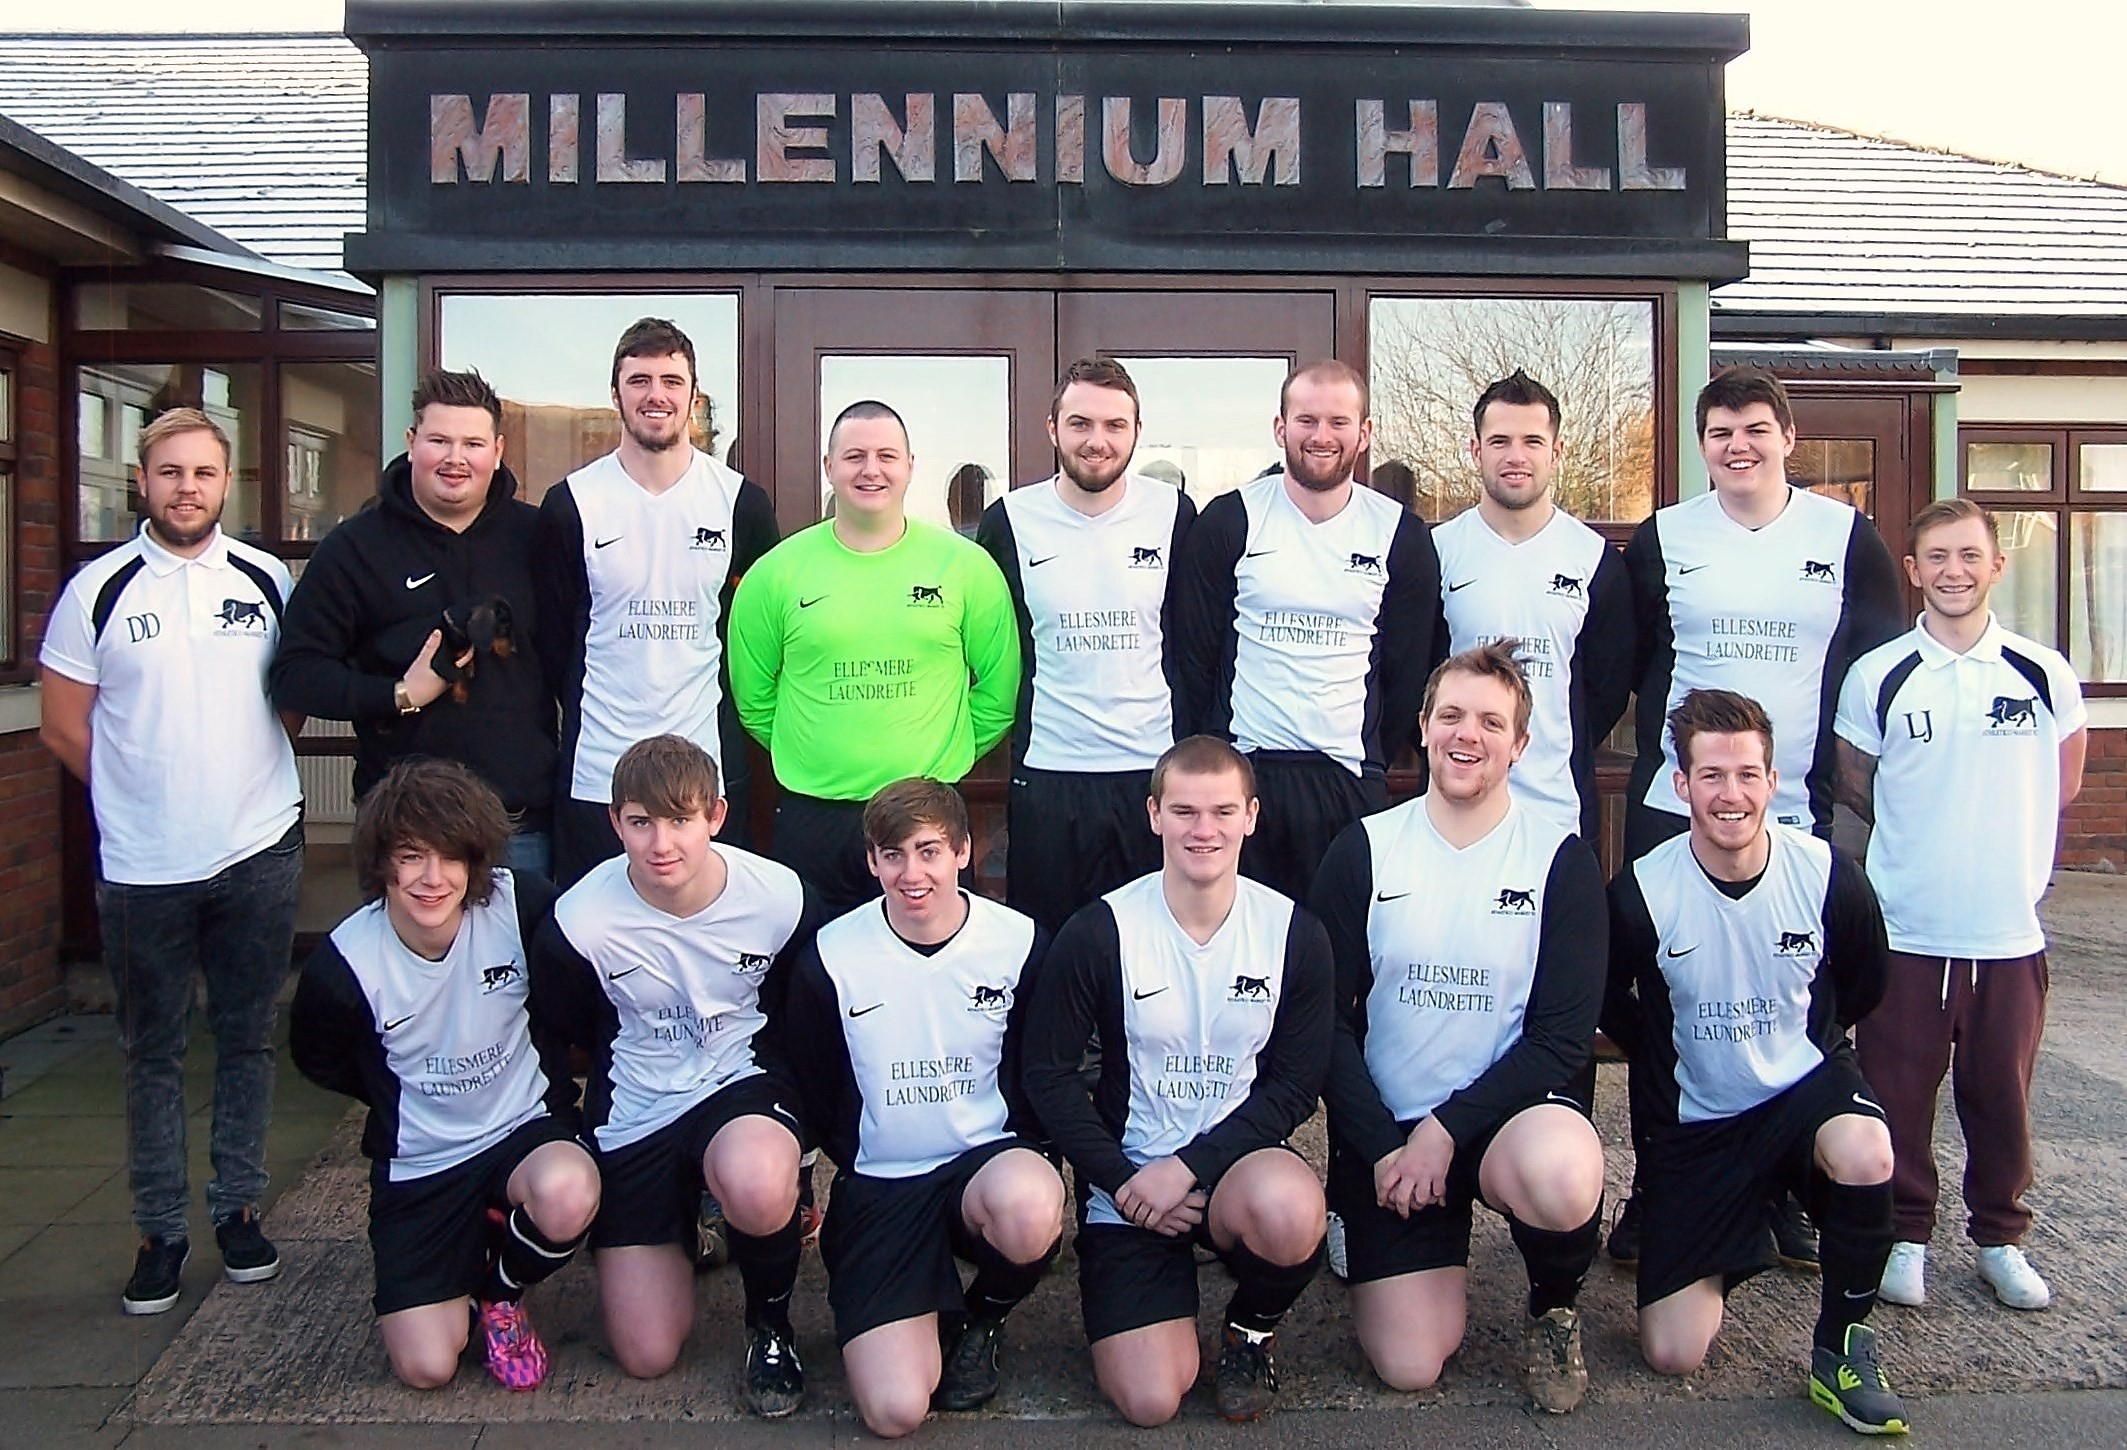 Our own resident football team. We have full changing / shower rooms including the Referee's.